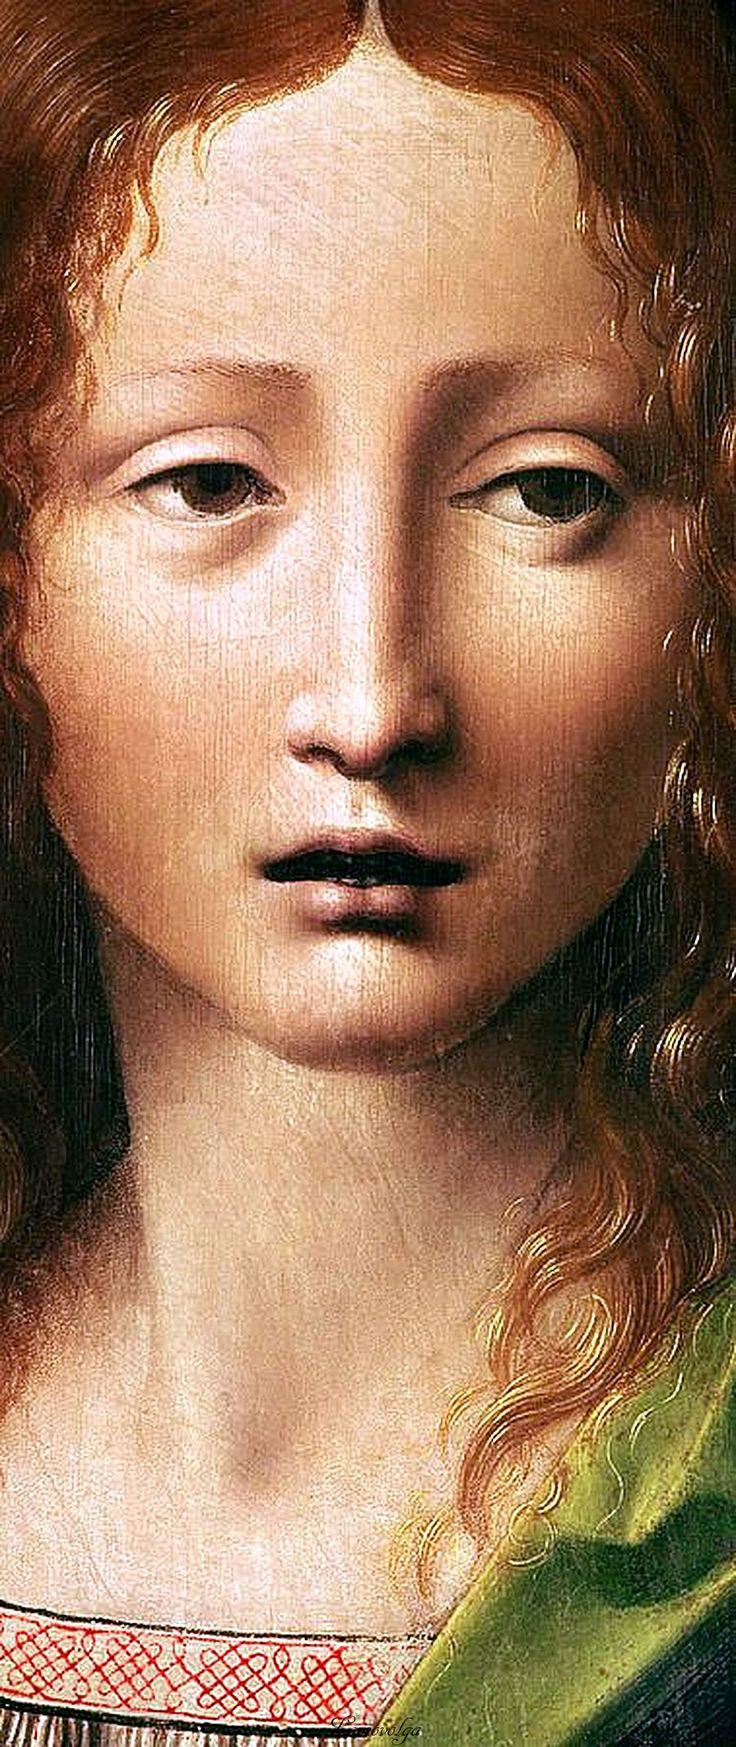 Leonardo Da Vinci - Renaissance - Head Of The Savior (detail)